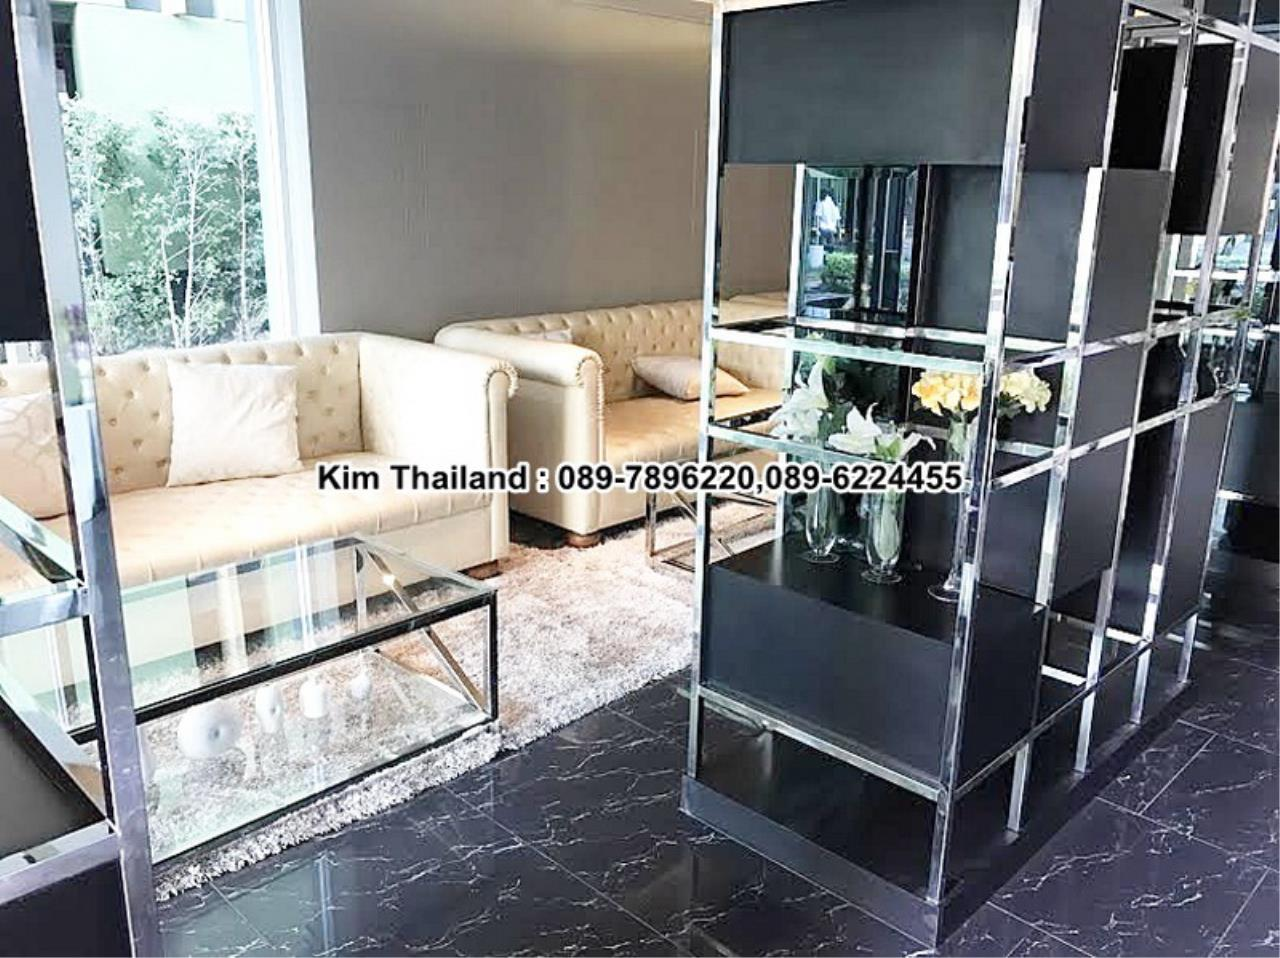 BKKcondorental Agency's For rent, Condo Metroluxe Rama 4., Area 28 sq.m. 1 bedroom. Rental 15,000 THB per month. 8